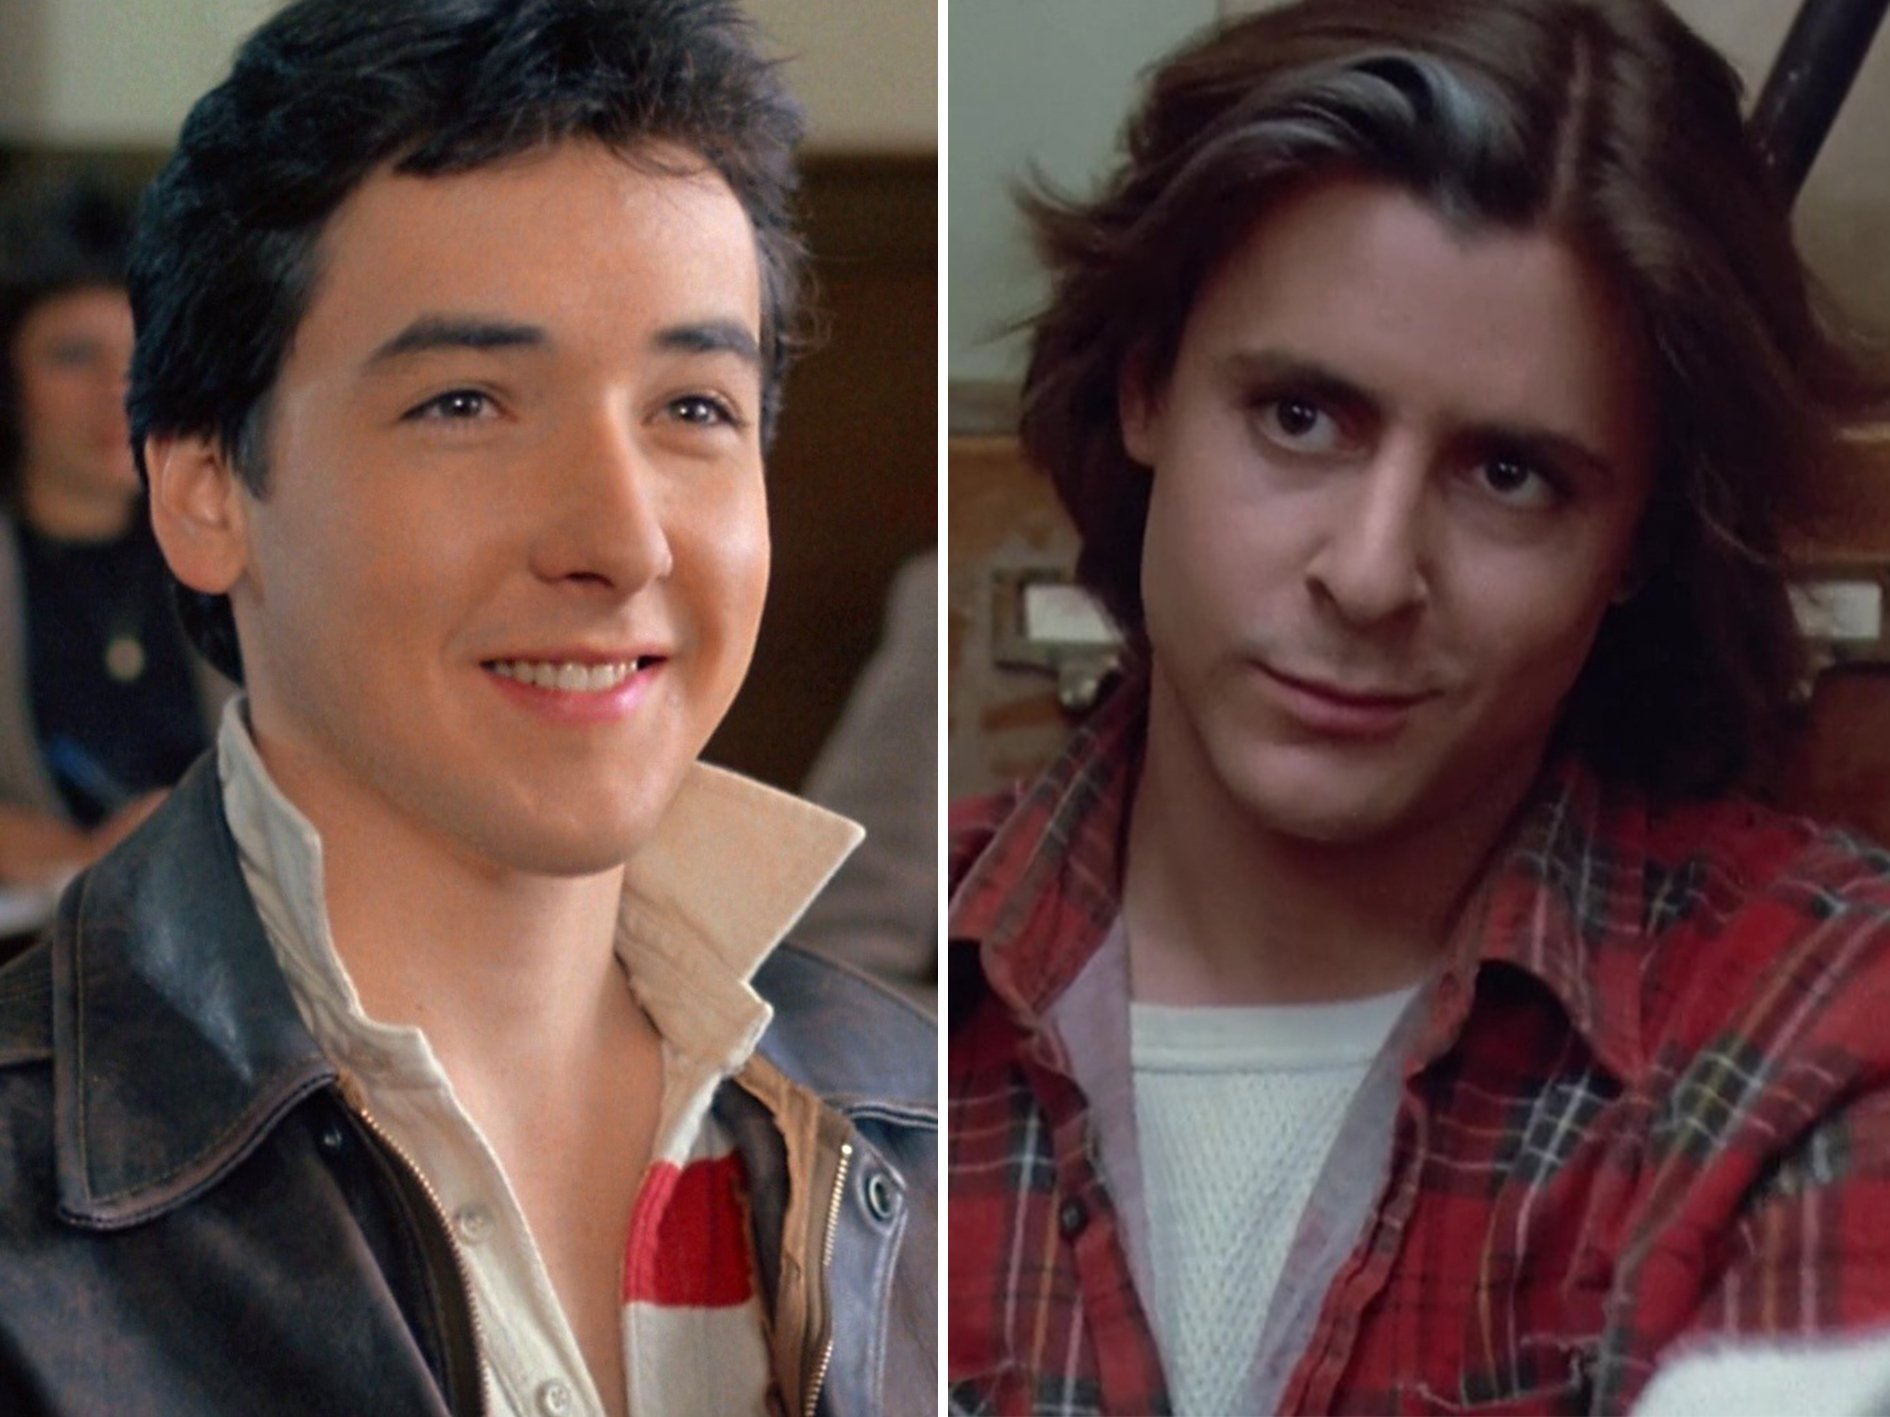 John Cusack Judd Nelson The Breakfast Club 12 Things You Never Knew About The Breakfast Club